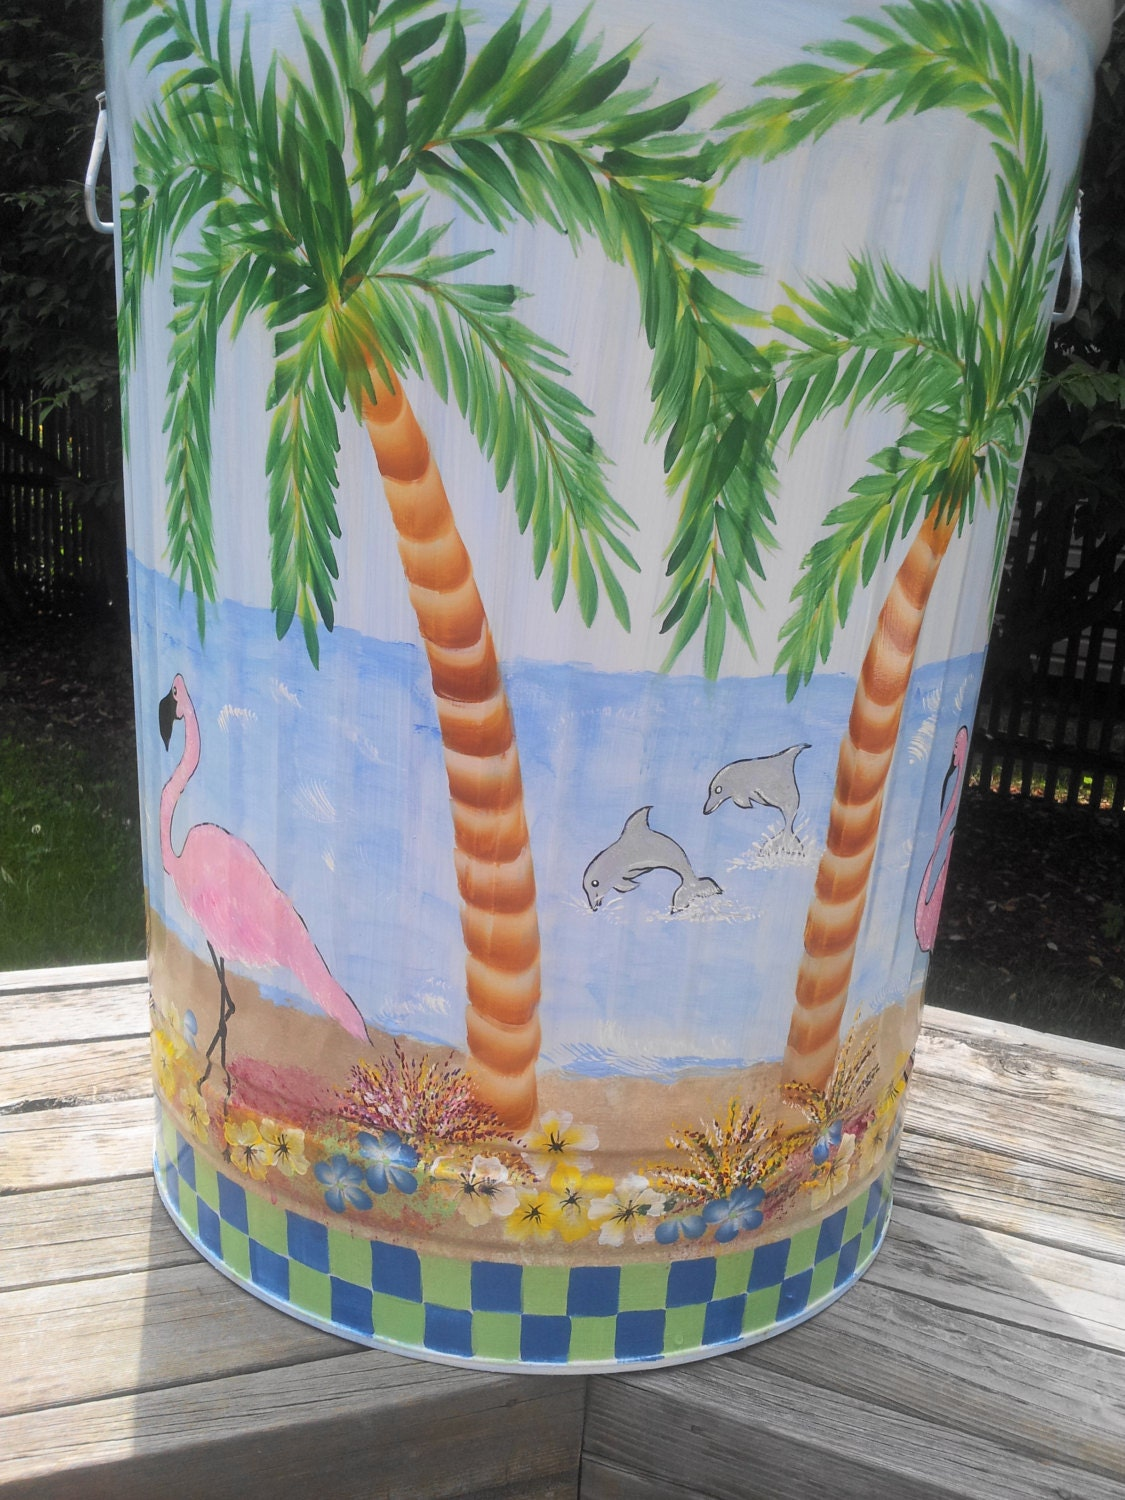 30 Gallon Decorative Hand Painted Galvanized Metal Trash Can